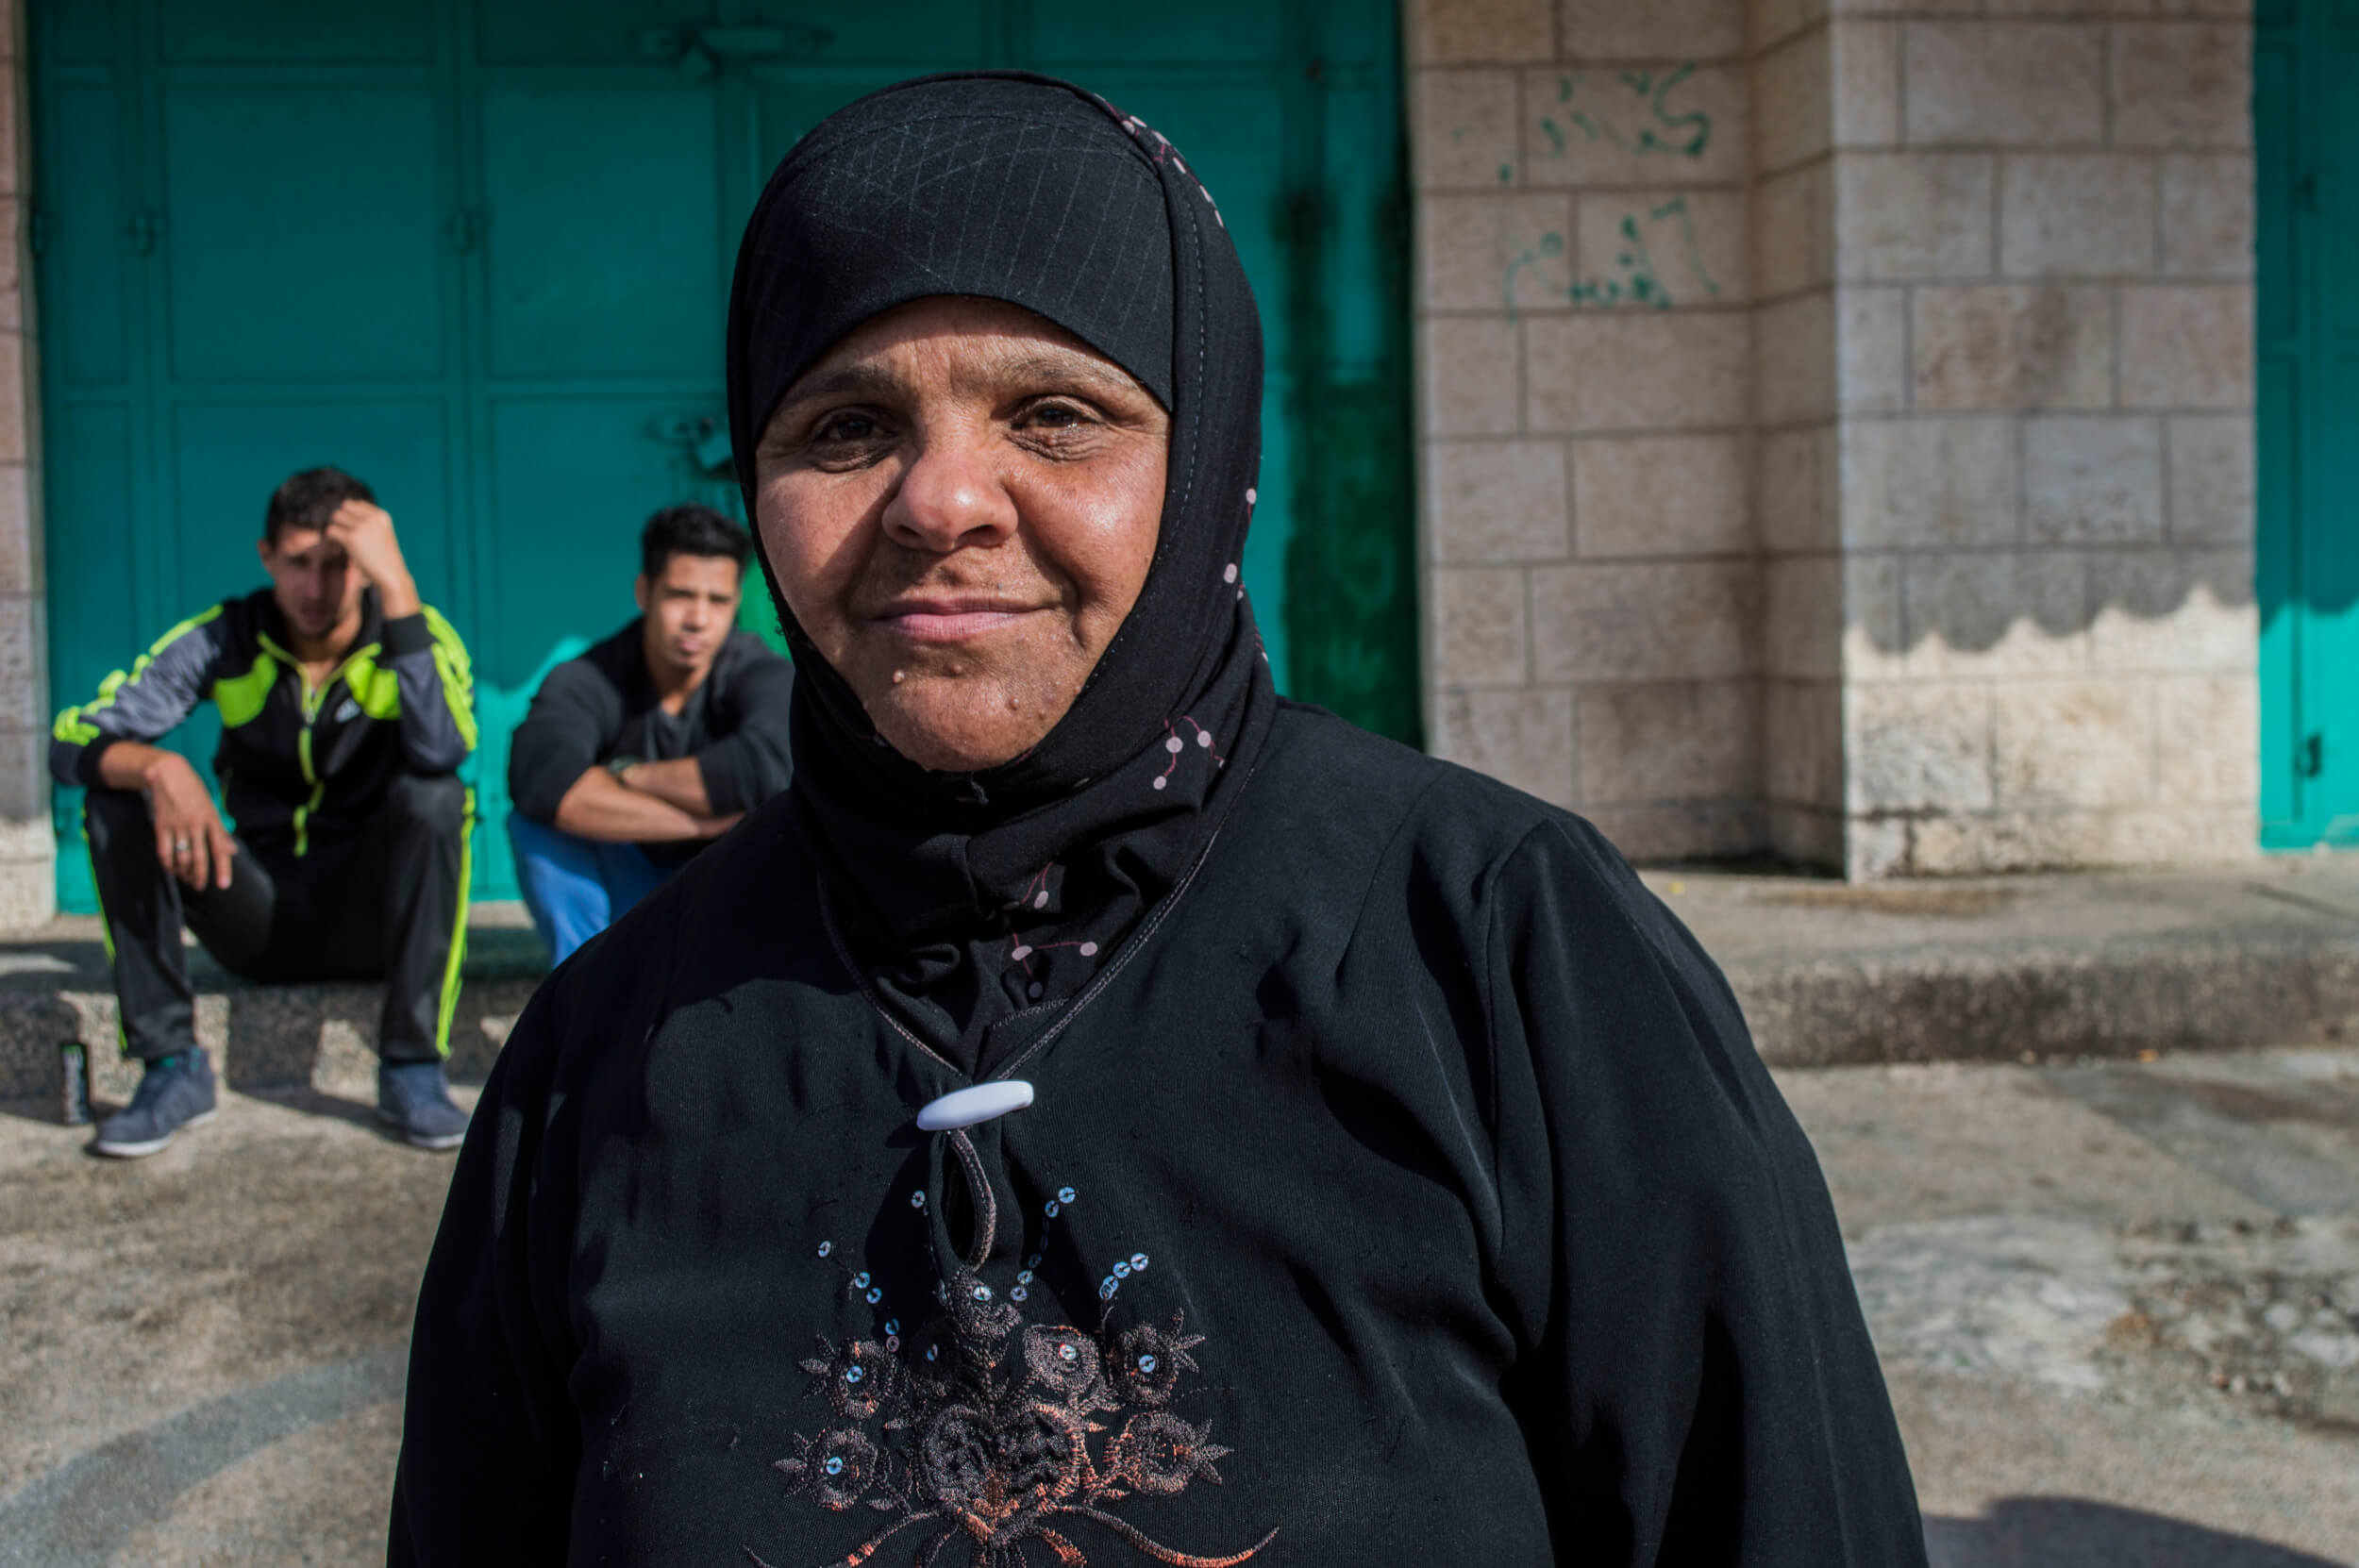 Amal Mirazir came out to the clashes to offer bags of sandwiches to the medics and protesters. (By Abed al Qaisi)